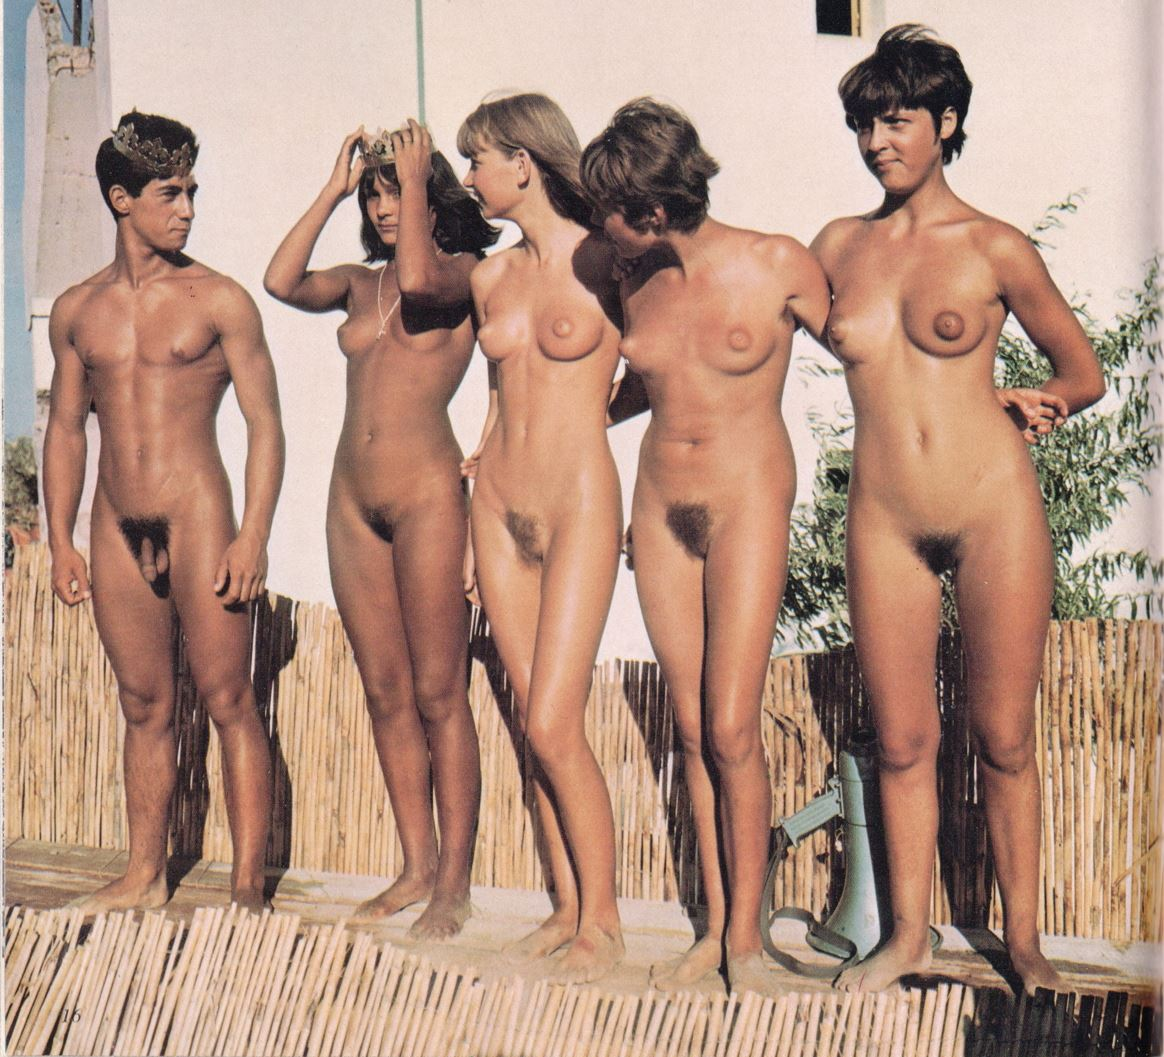 Authoritative young girls naked at home take group picture will